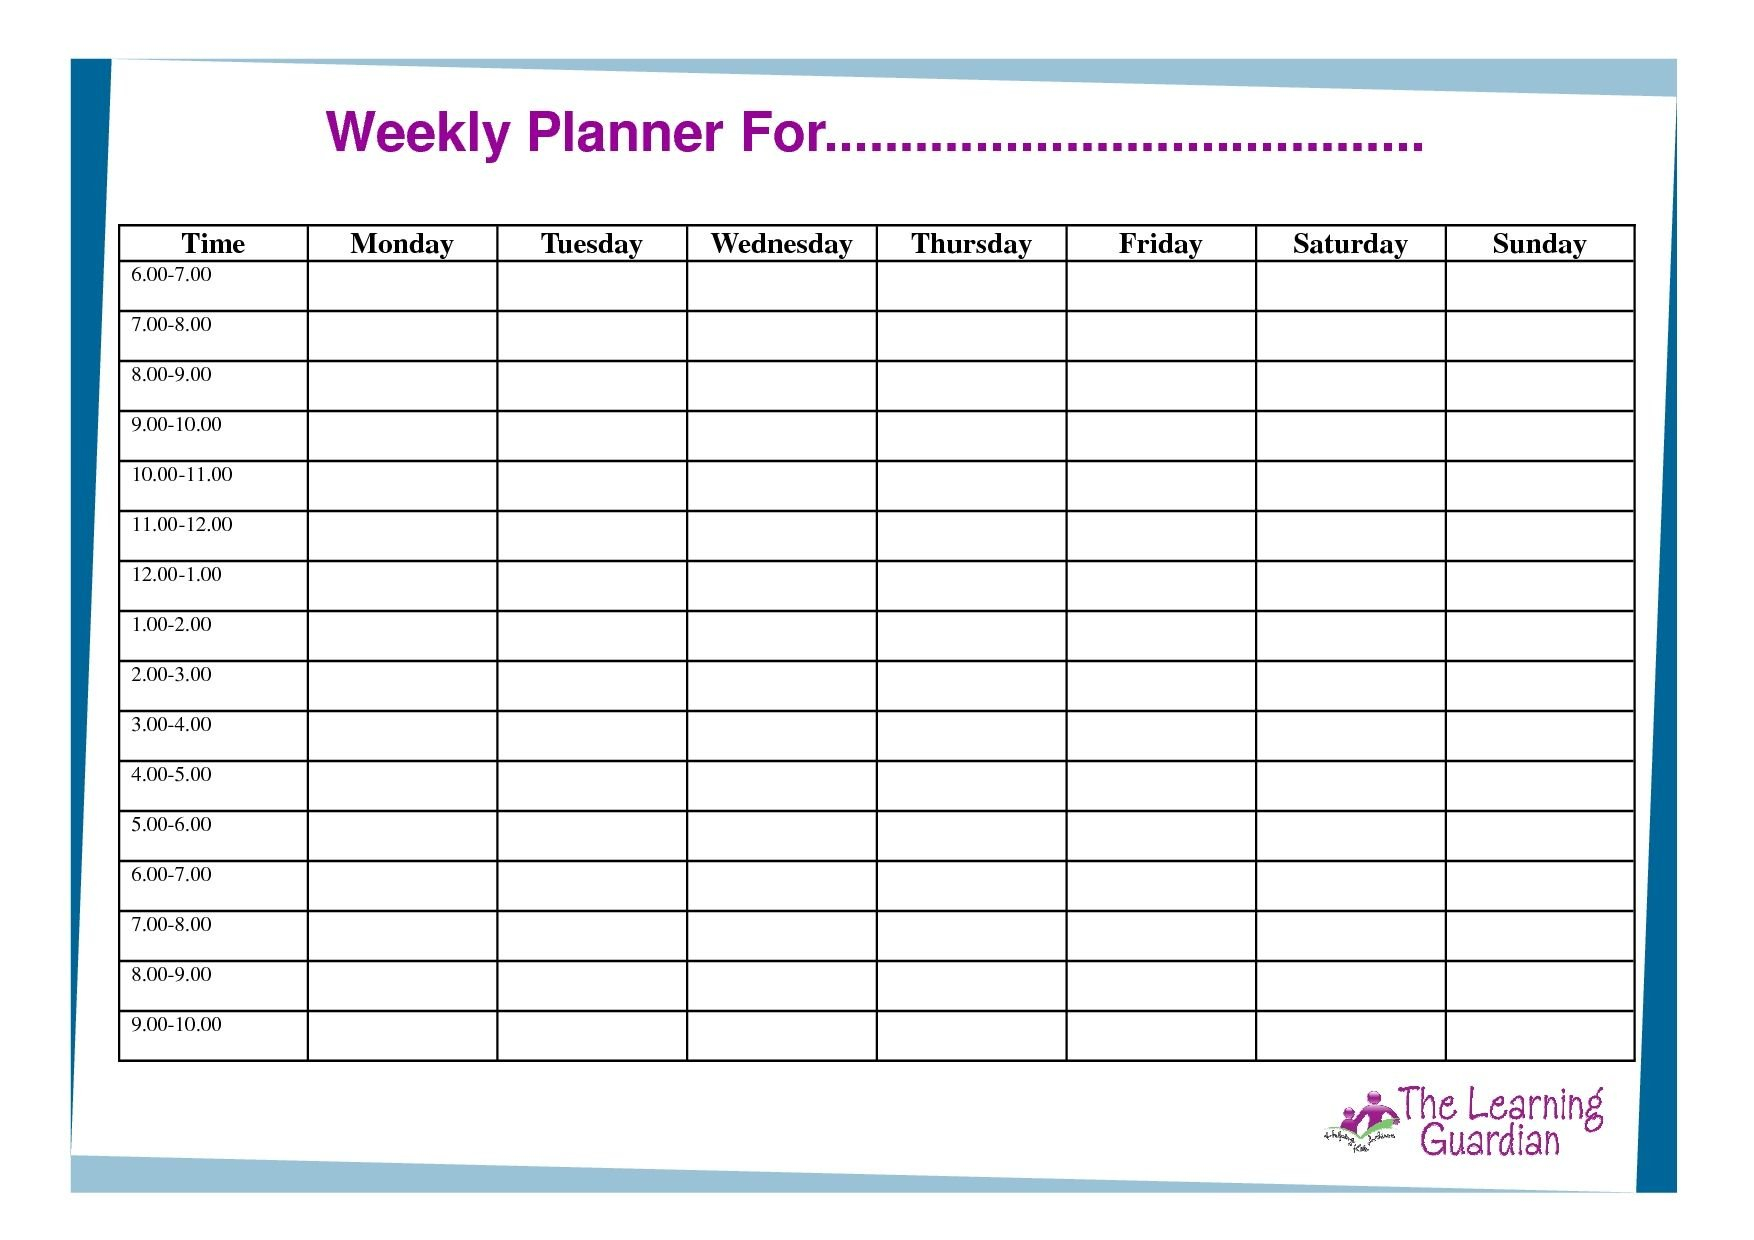 Free Printable Weekly Calendar Templates Planner For Time Blank 7 Day Calendar Template